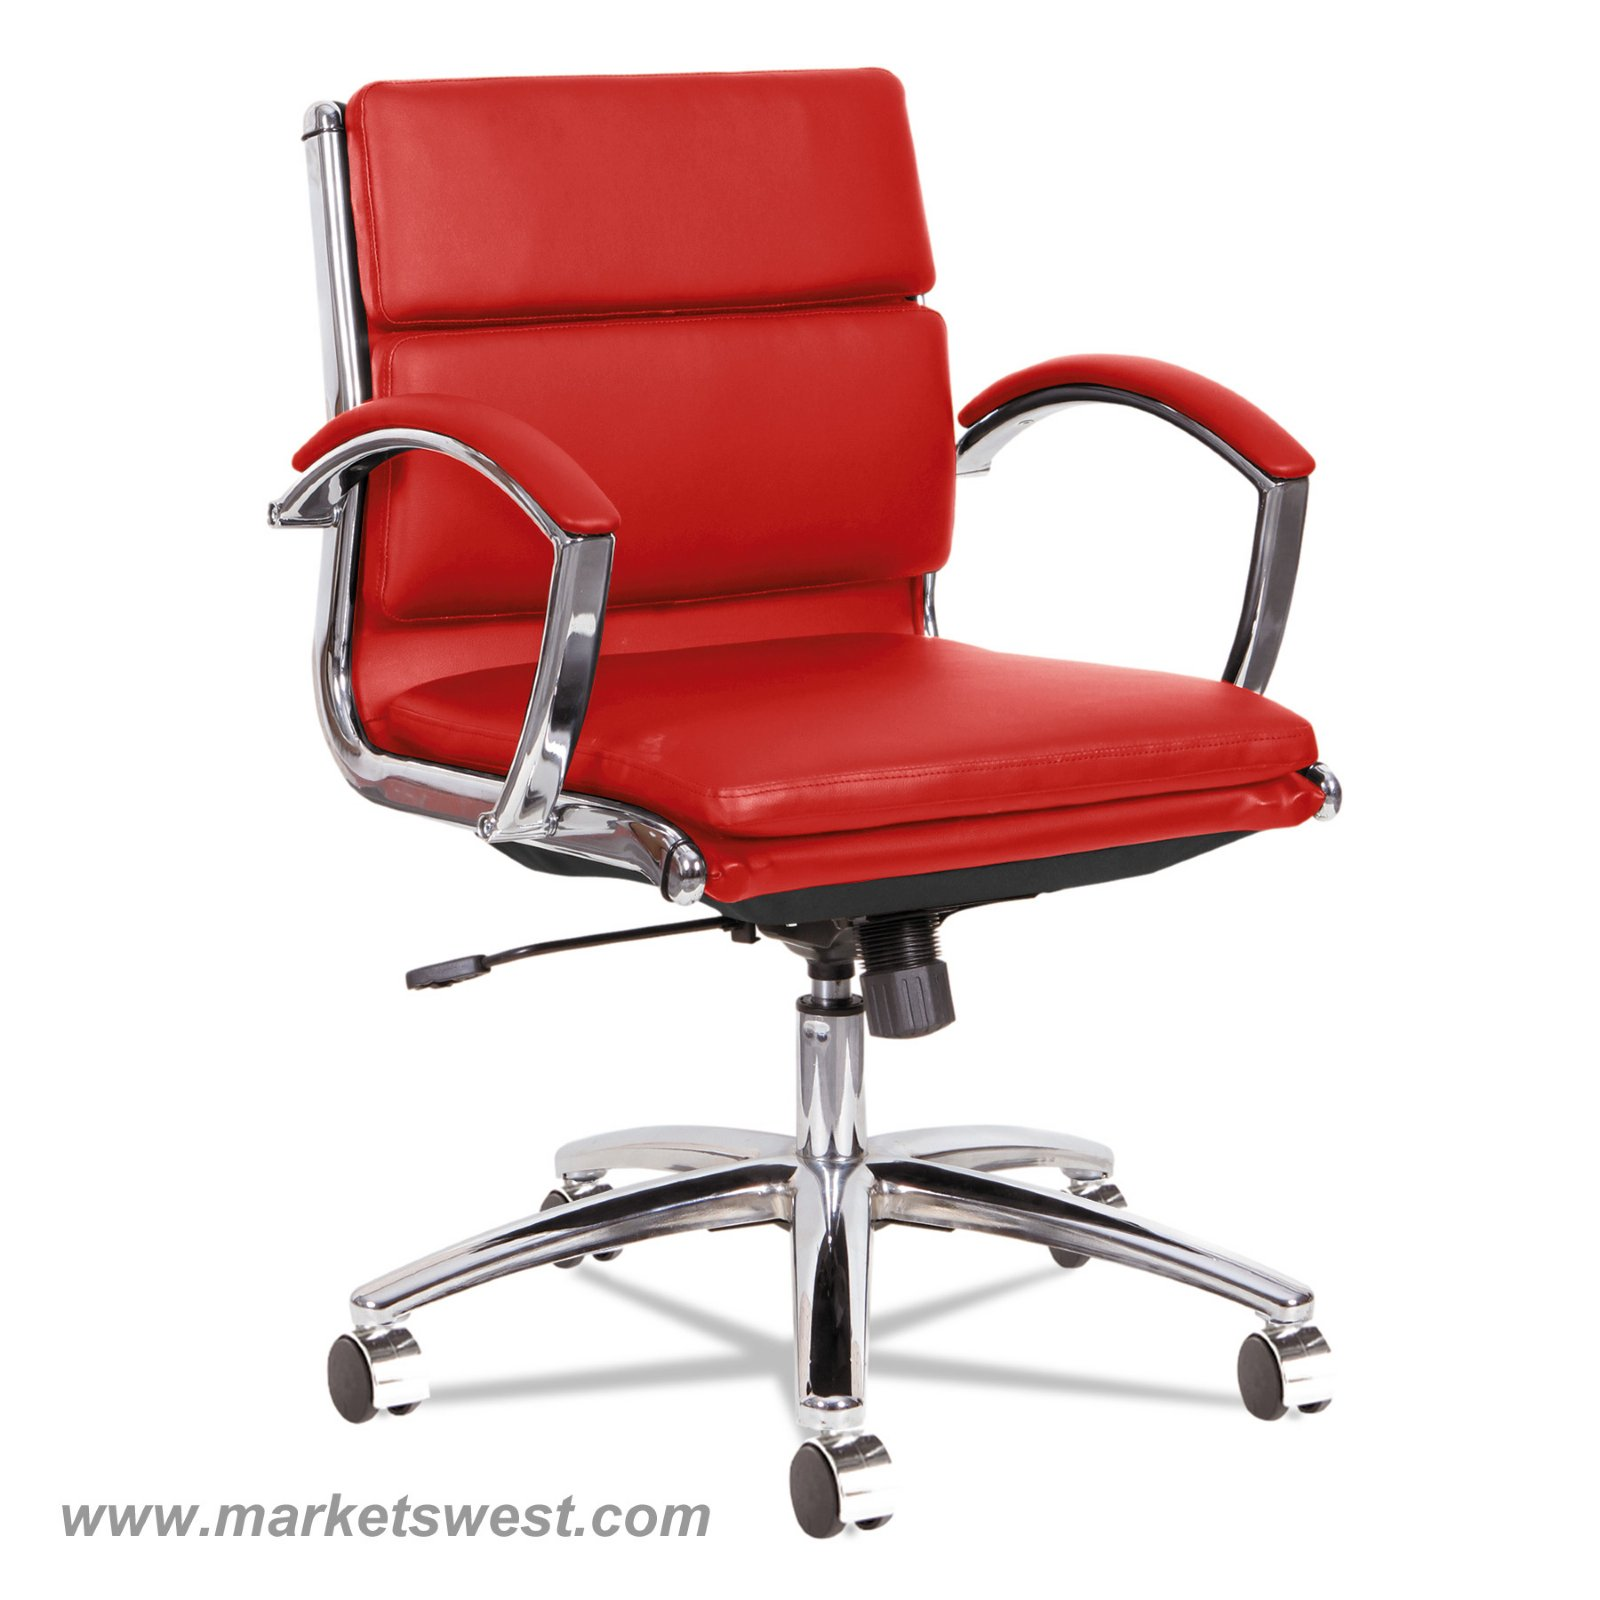 neratoli low back swivel tilt chair red soft touch leather chrome